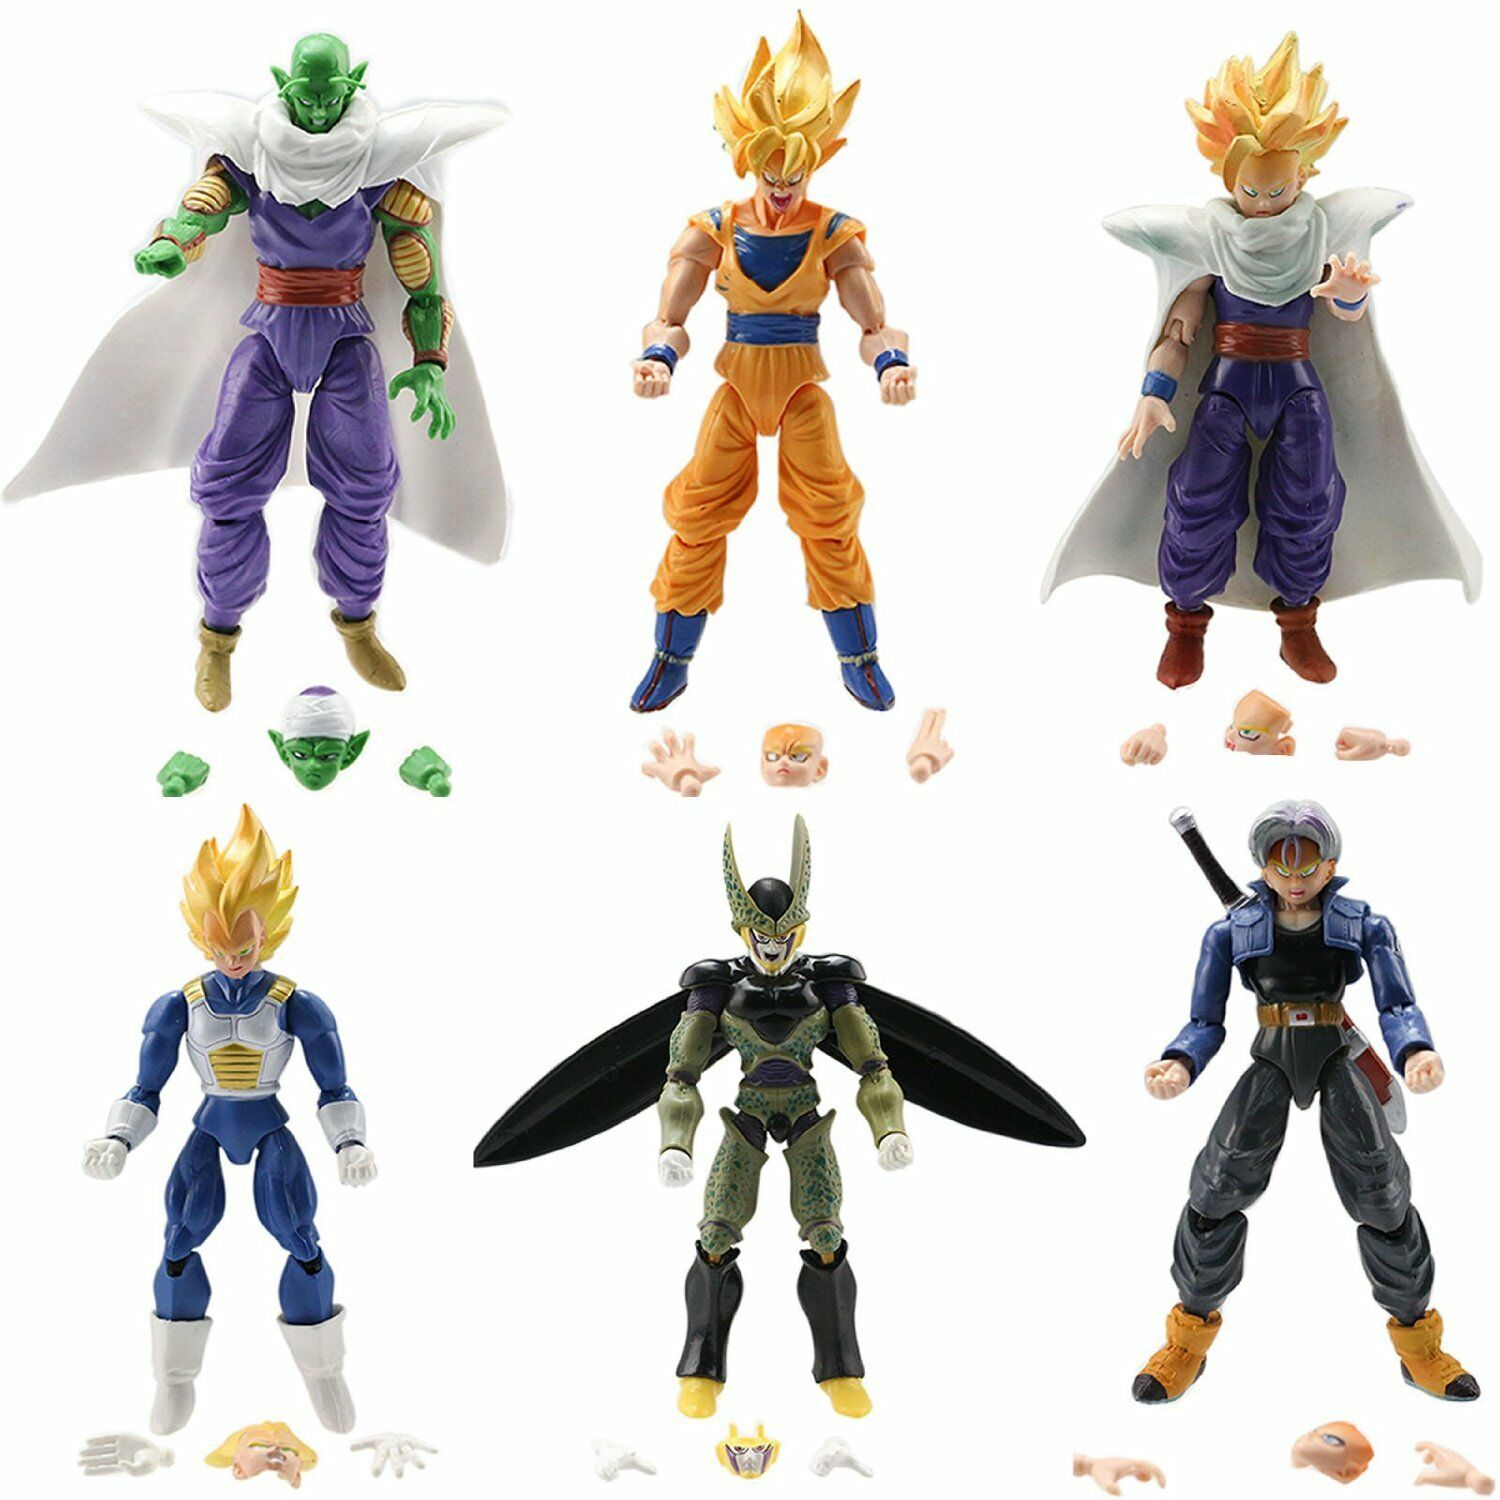 Dragon Ball Toys : Dragon ball z quot figures piccolo cell trunks super